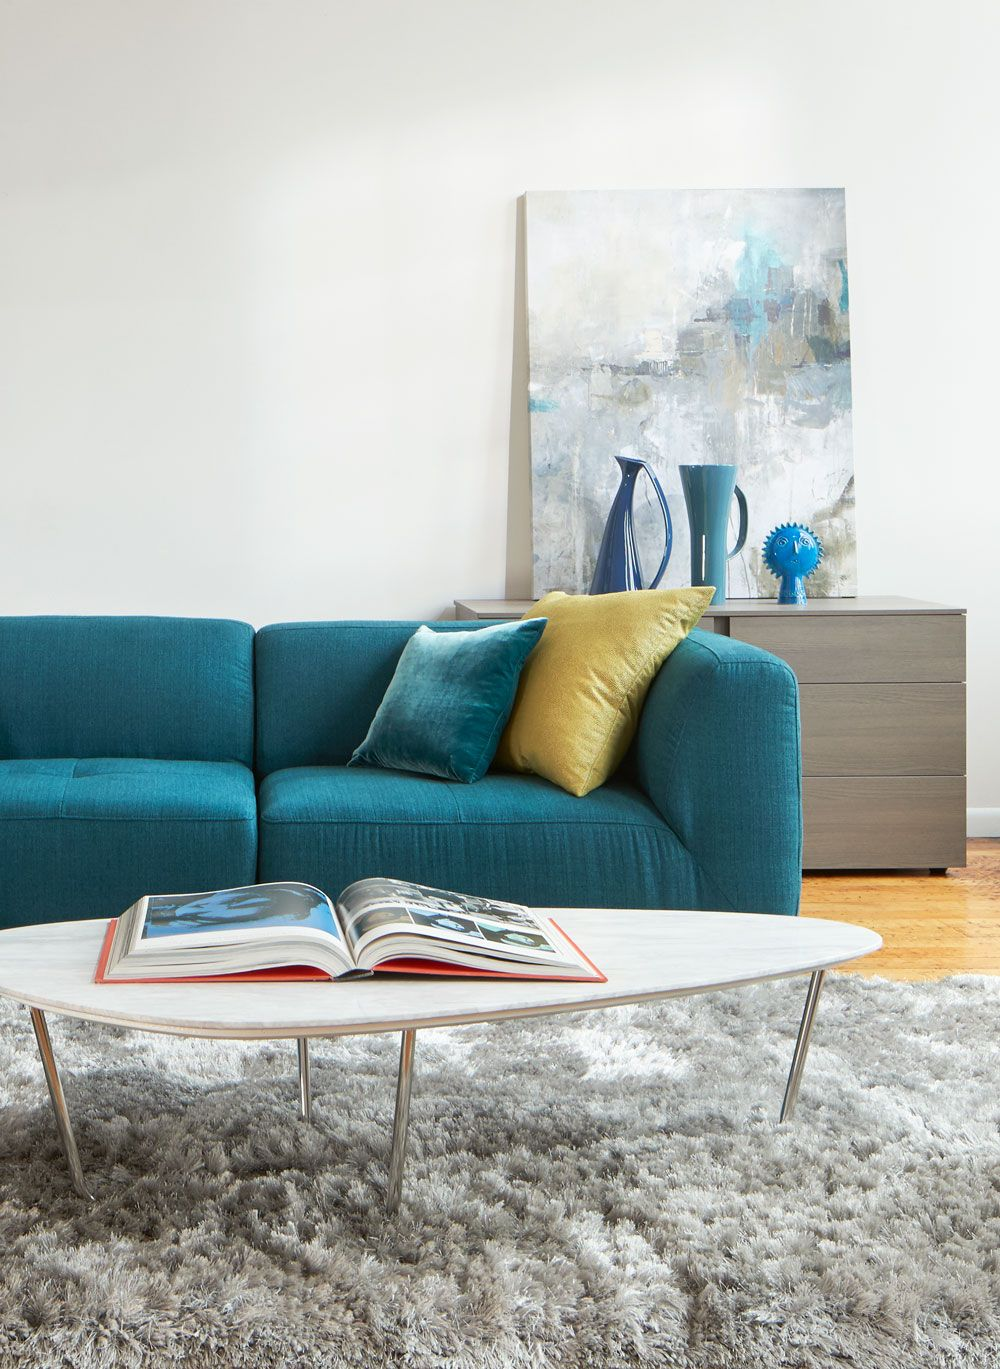 malibu modular sectional | ottomans, construction and living rooms